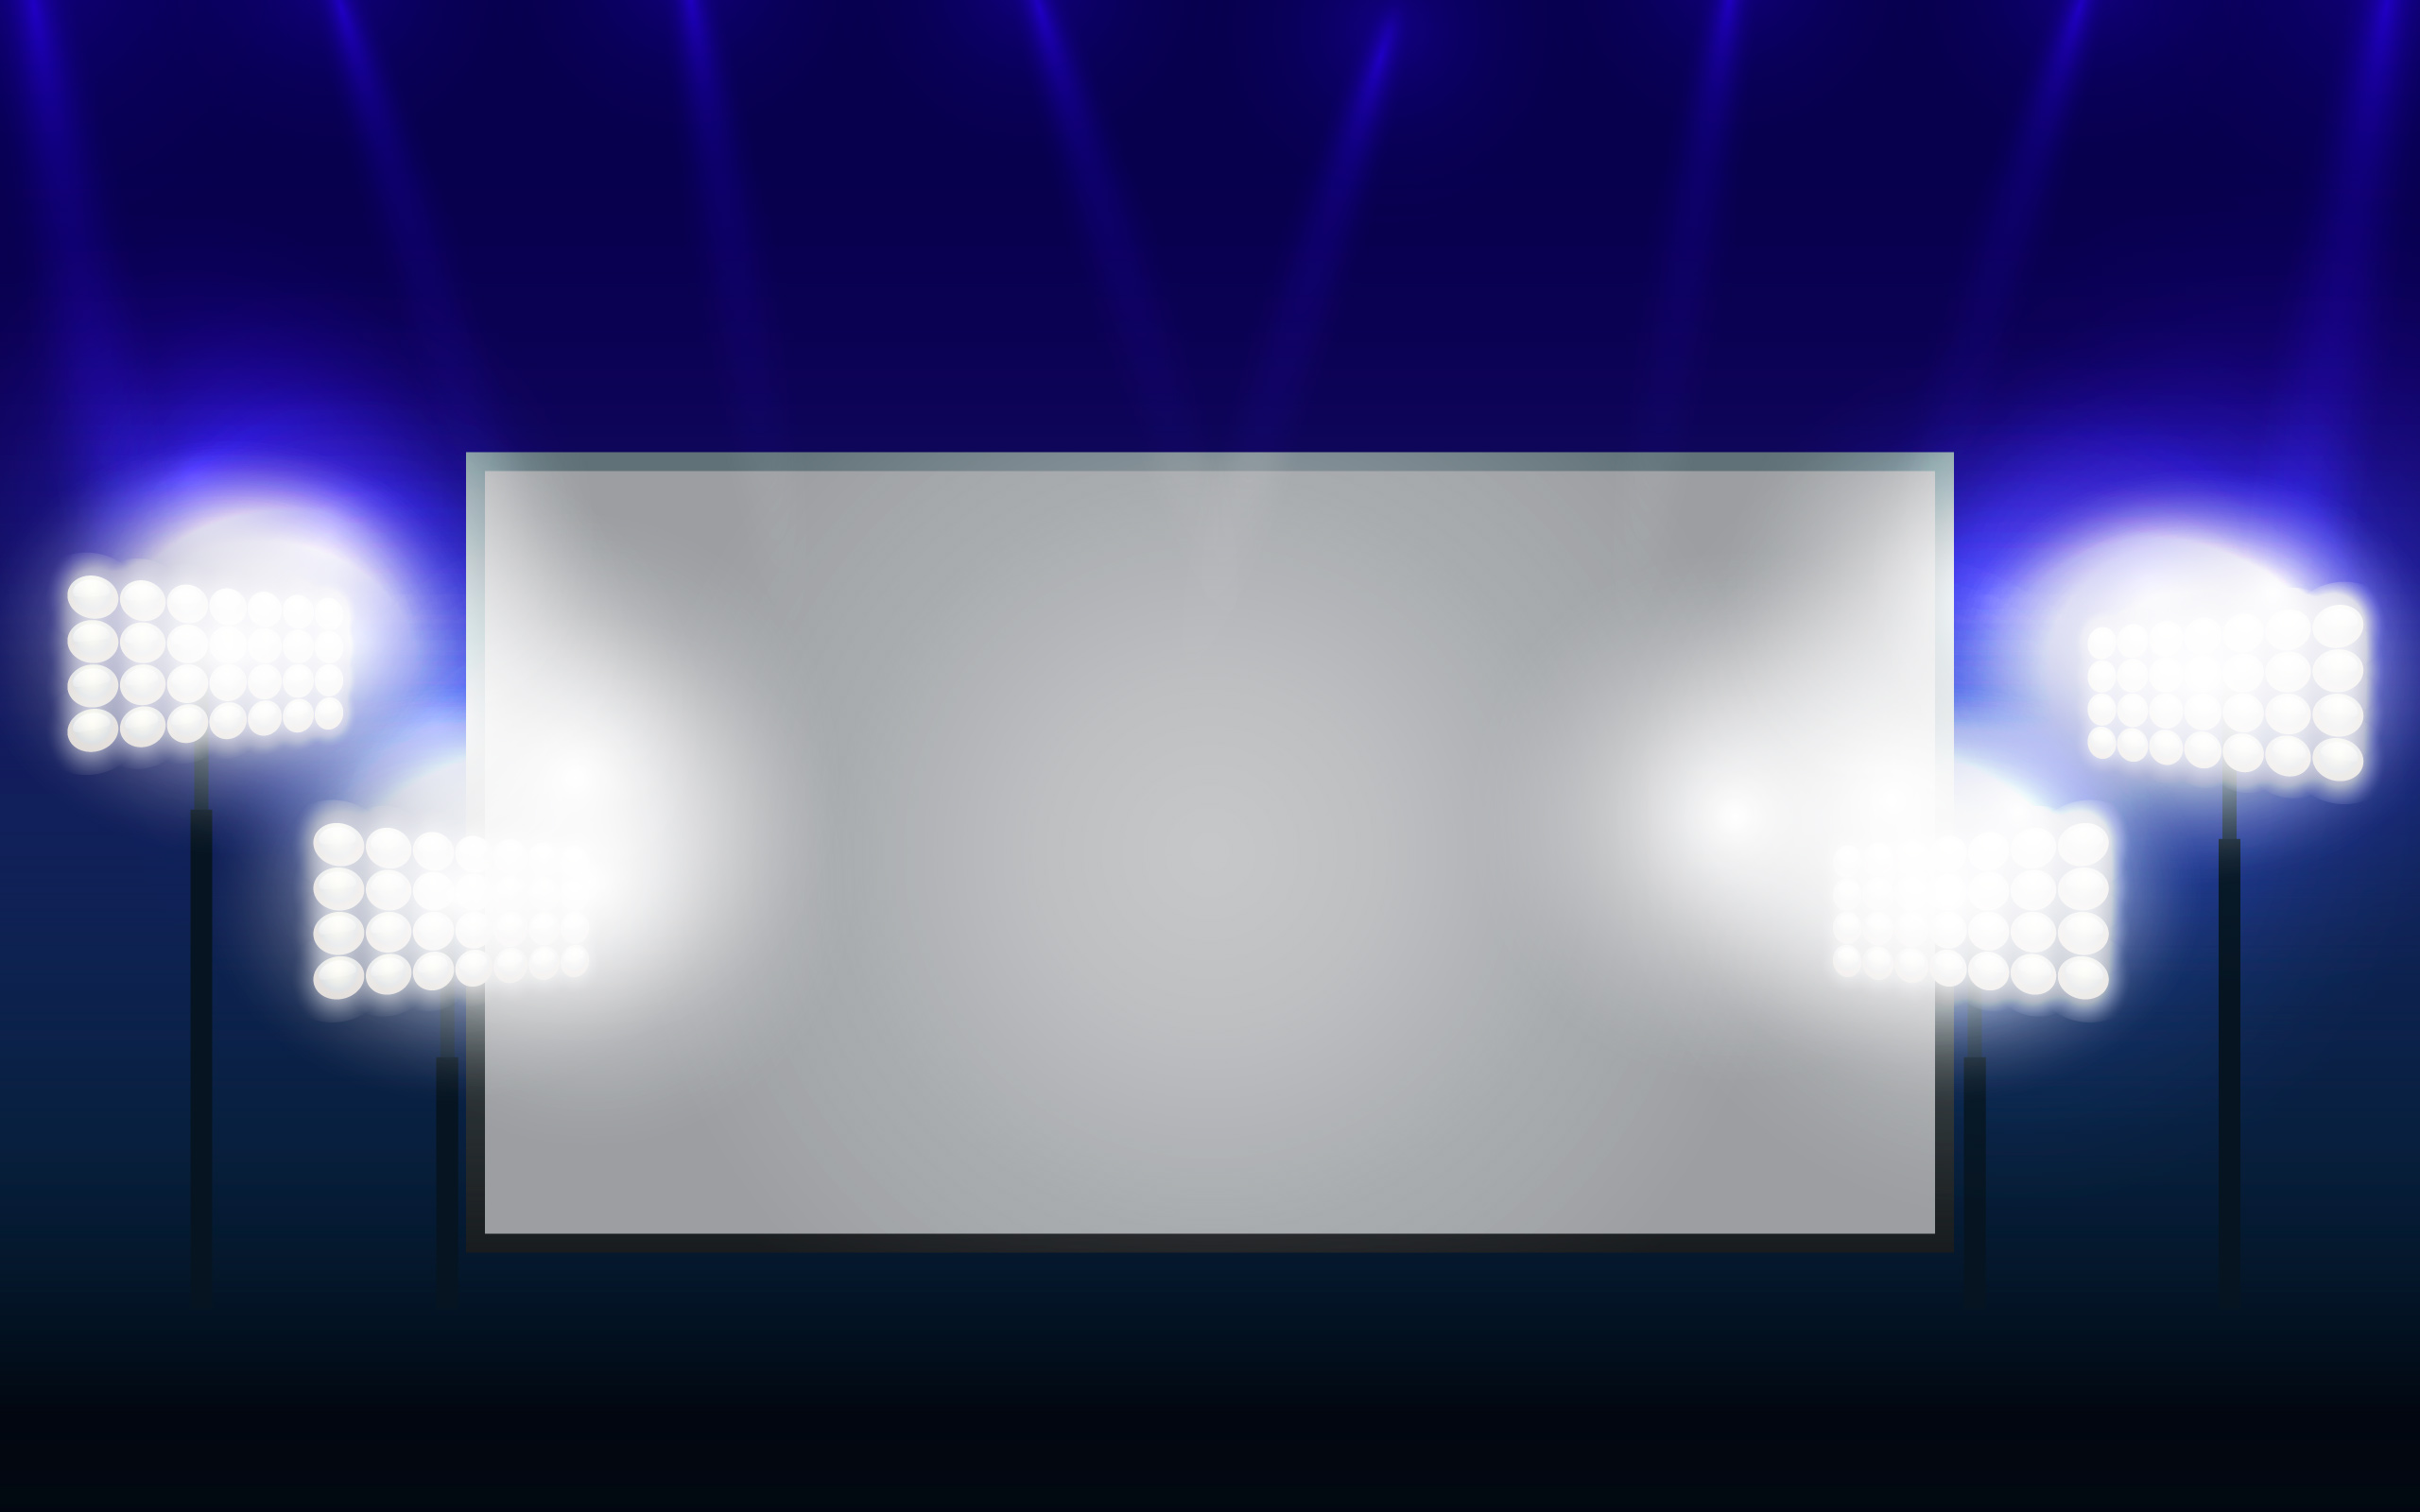 jumbotron and floodlights blank screen copy space